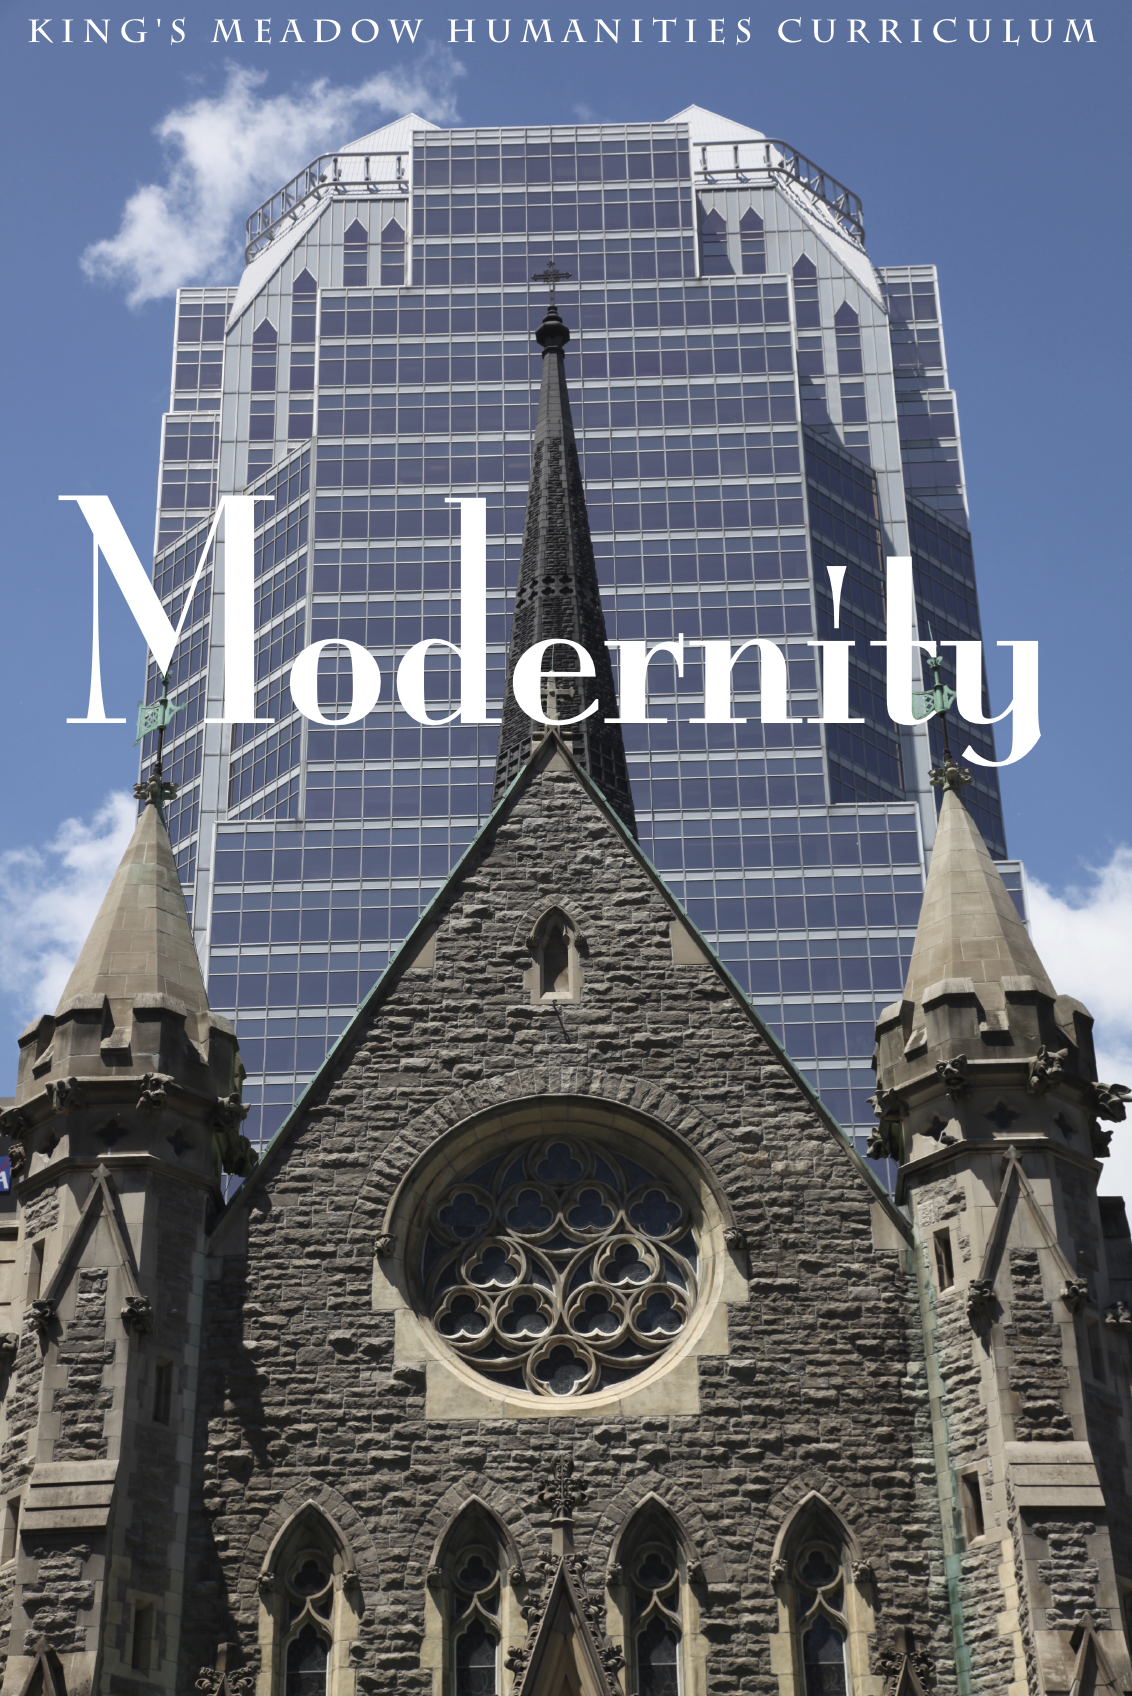 tradition and modernity in europe And cultural change, theories of modernity, modernity and new forms of social movements, modernity and luhmann thus departs from the tradition causal assumptions of evolutionary theory and builds a high degree of bendix (1979) offers another variant of modernity that tempers western european rationalism with.